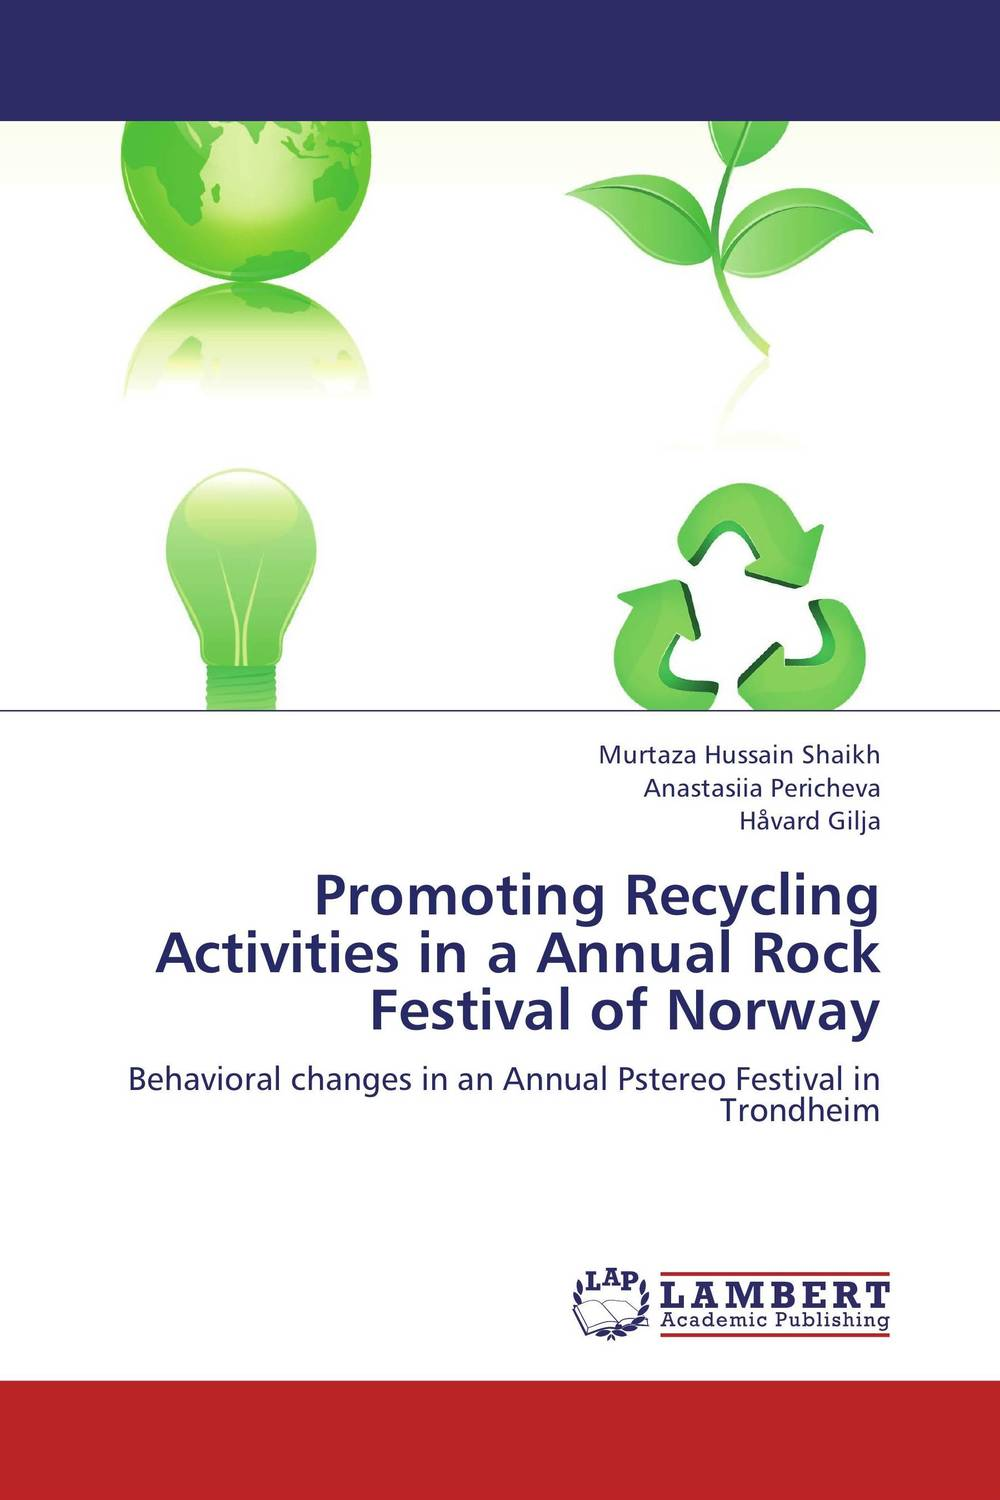 Promoting Recycling Activities in a Annual Rock Festival of Norway fuji rock festival 2017 niigata saturday